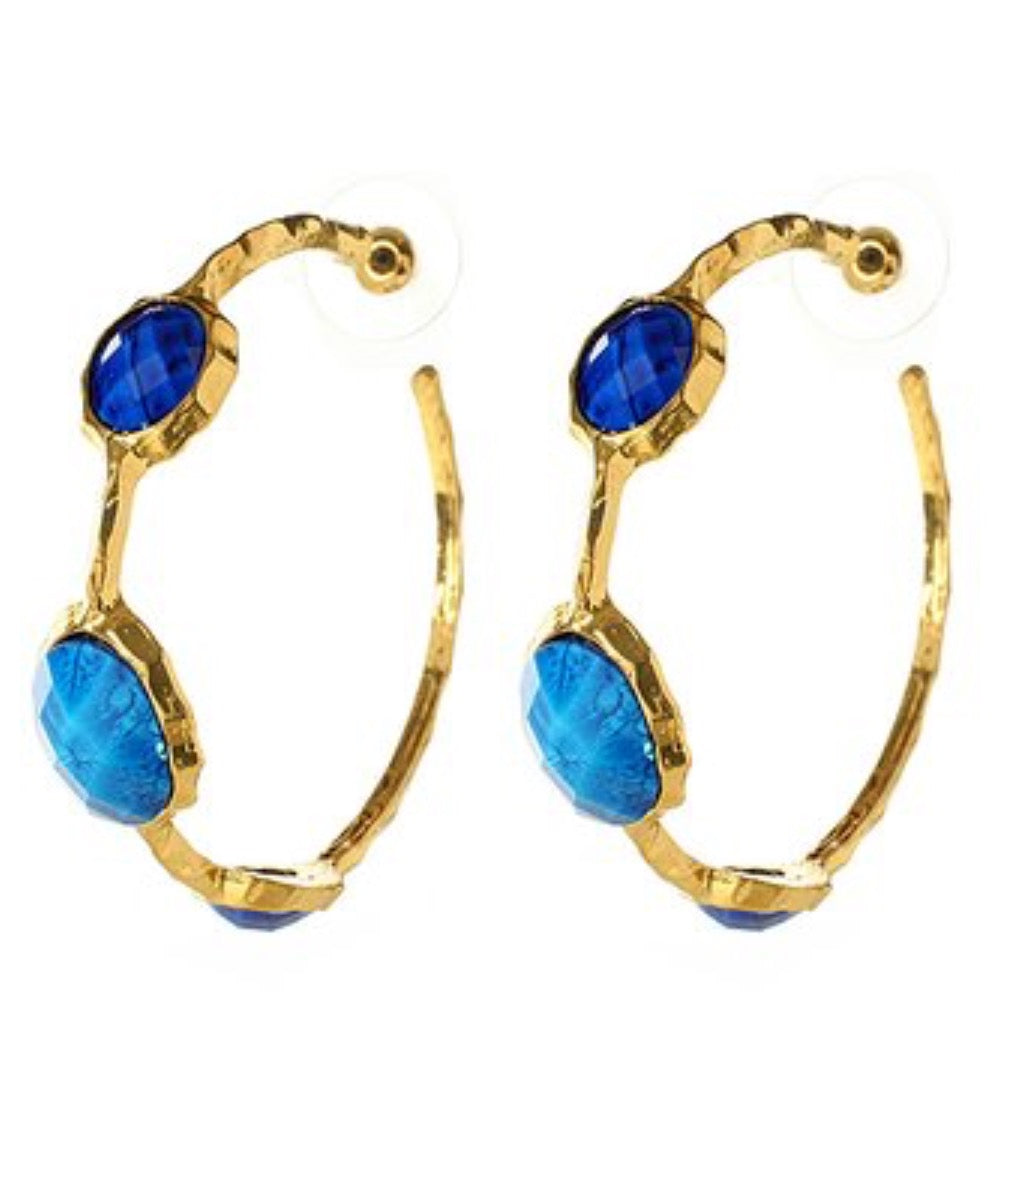 Earrings - Lapis Cleopatra Hoop Earrings